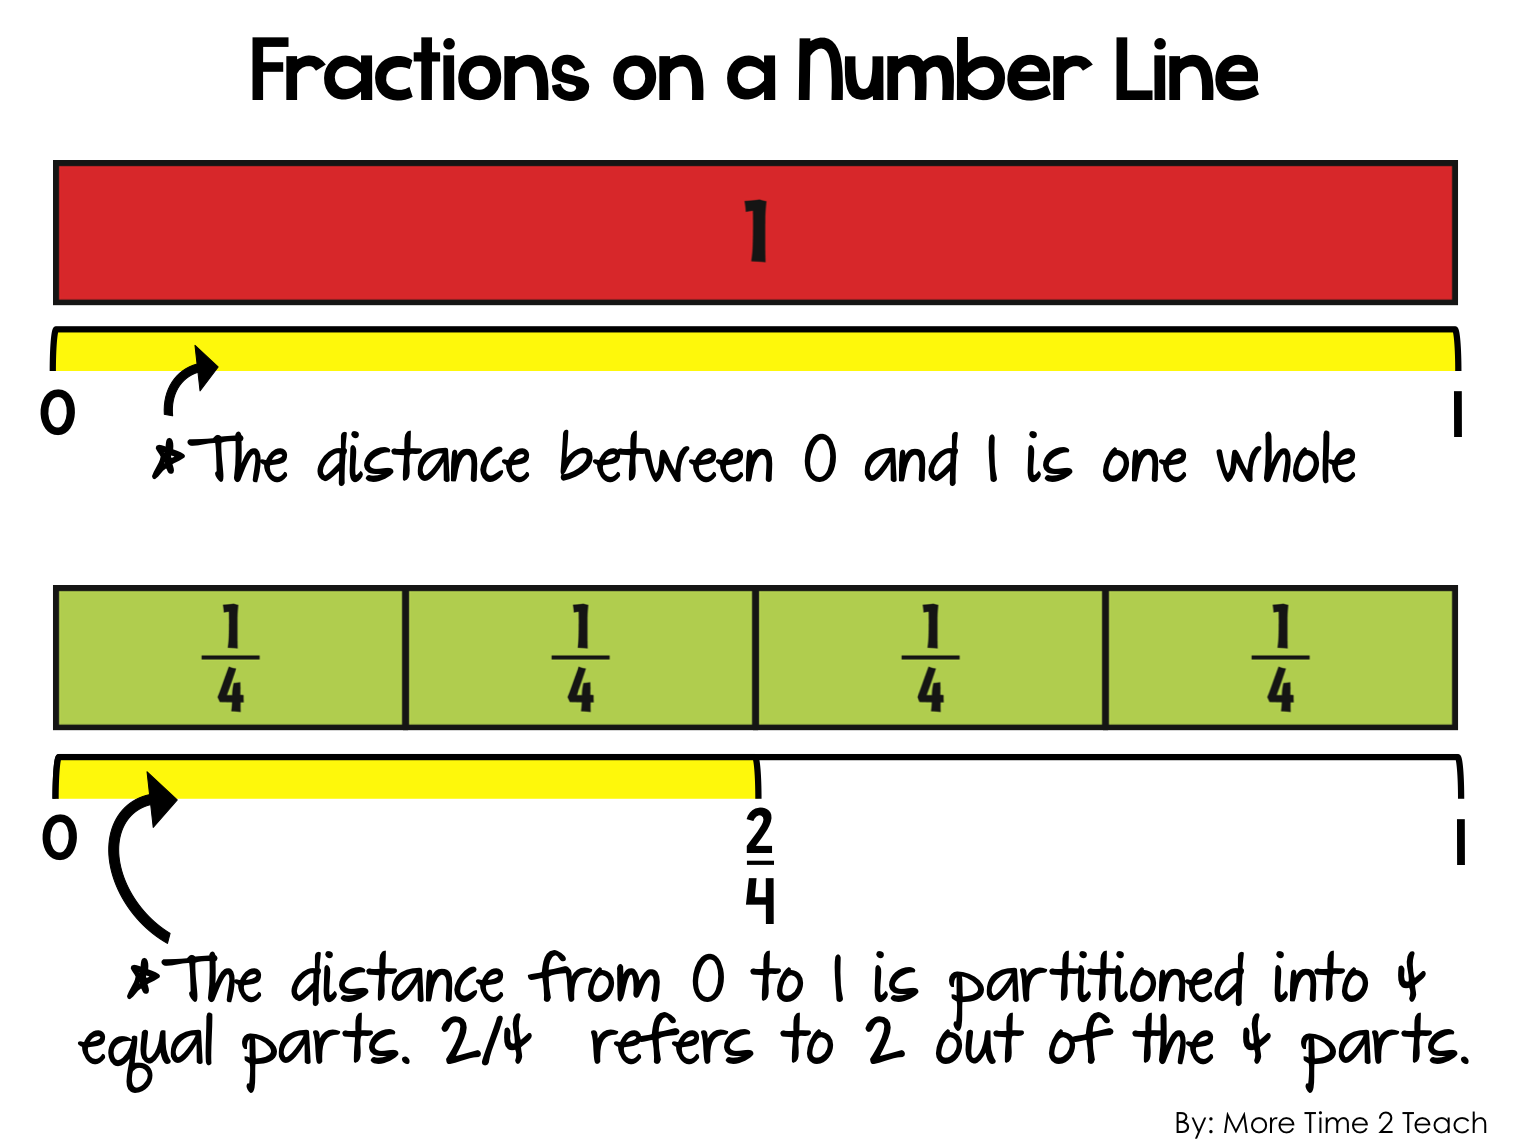 worksheet Visual Fractions fractions on number line worksheets math aidscom visual learn with models